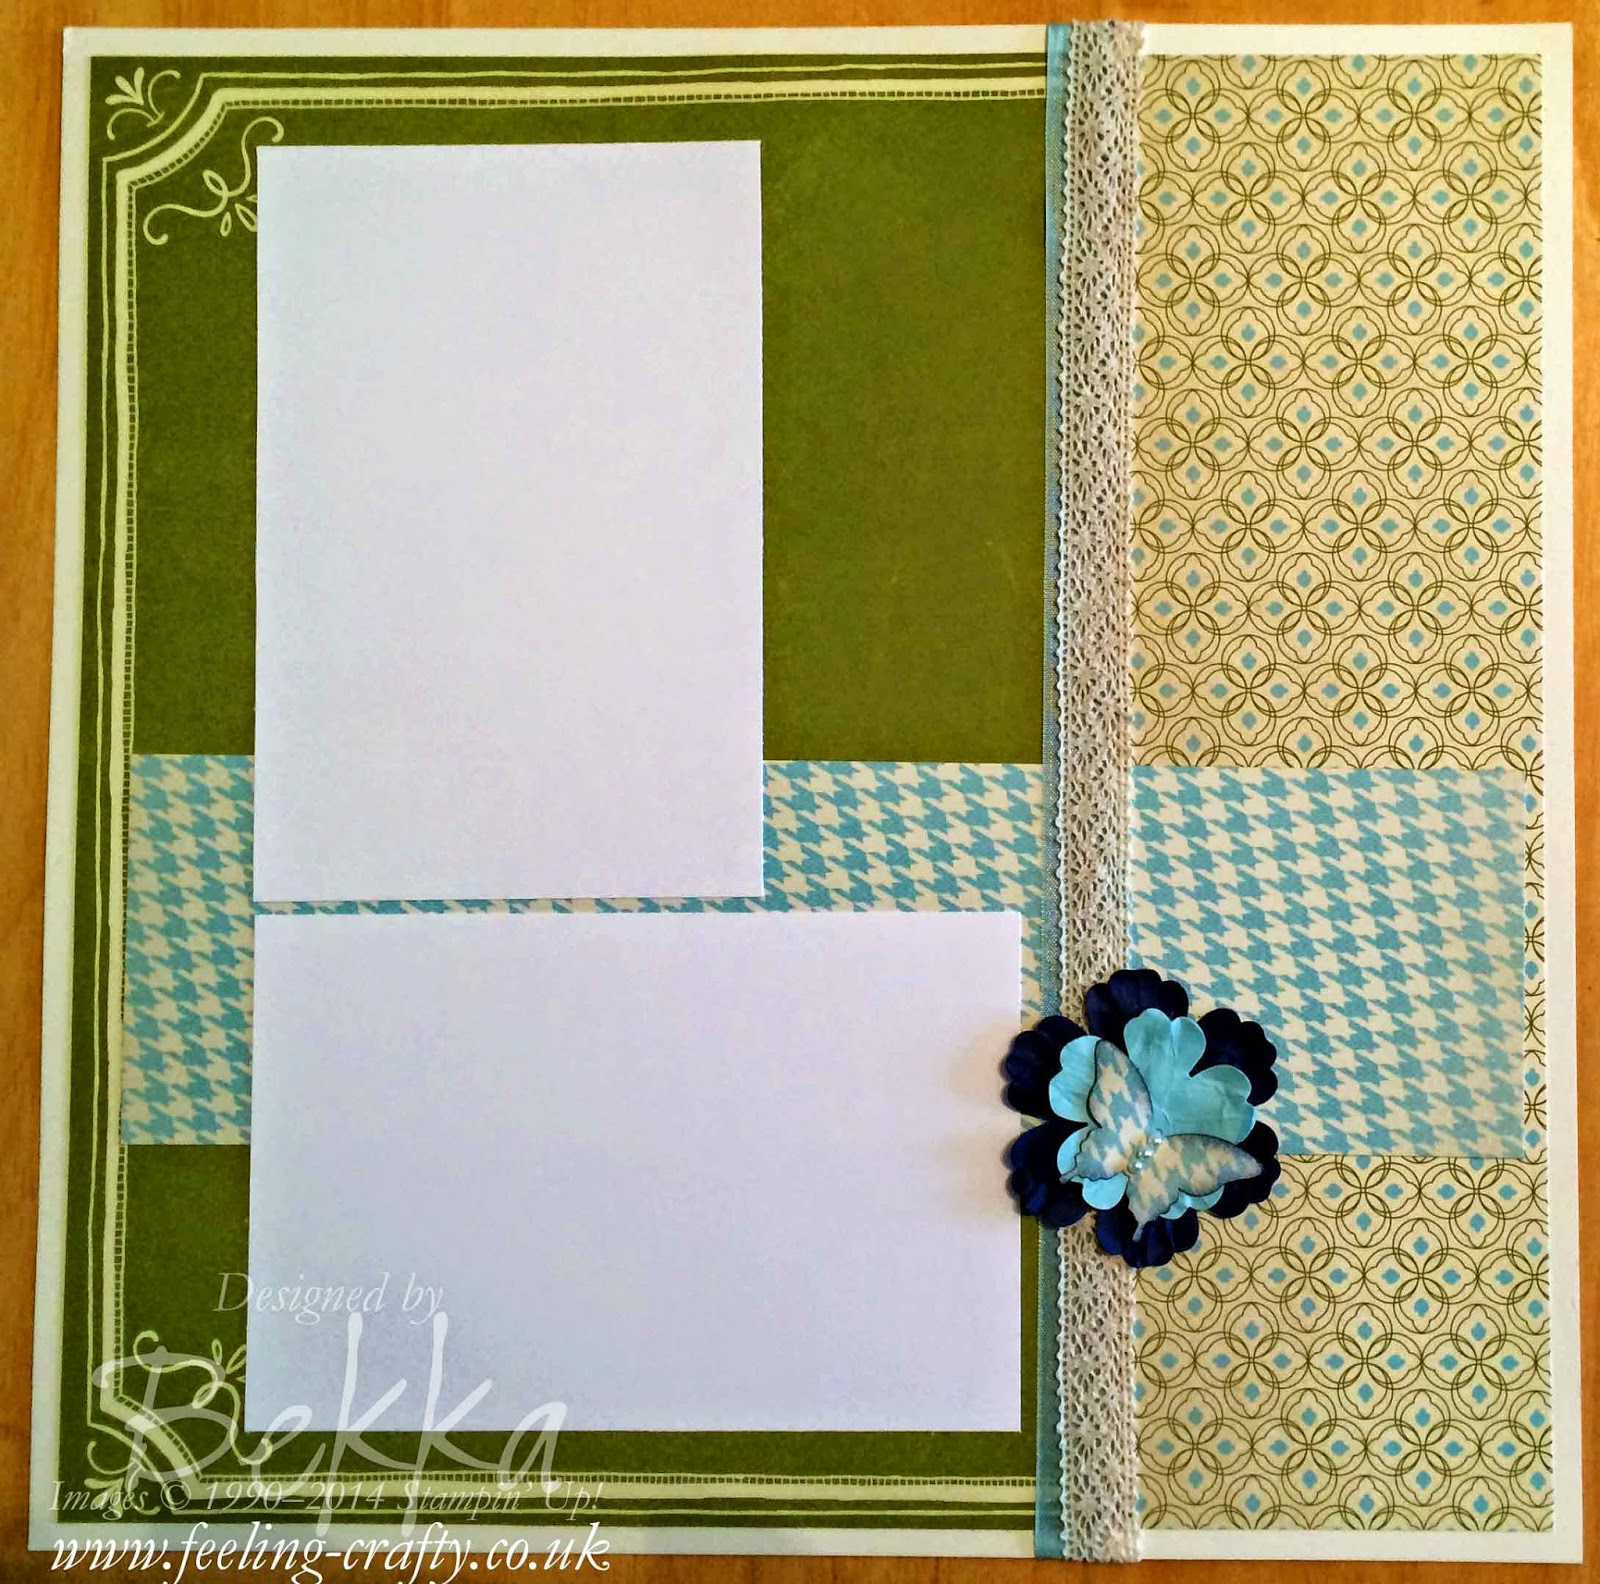 Stampin' Up! Etcetra Papers Scrapbook Page by UK Based Demonstrator Bekka - check her blog every Saturday for great scrapbook inspiration